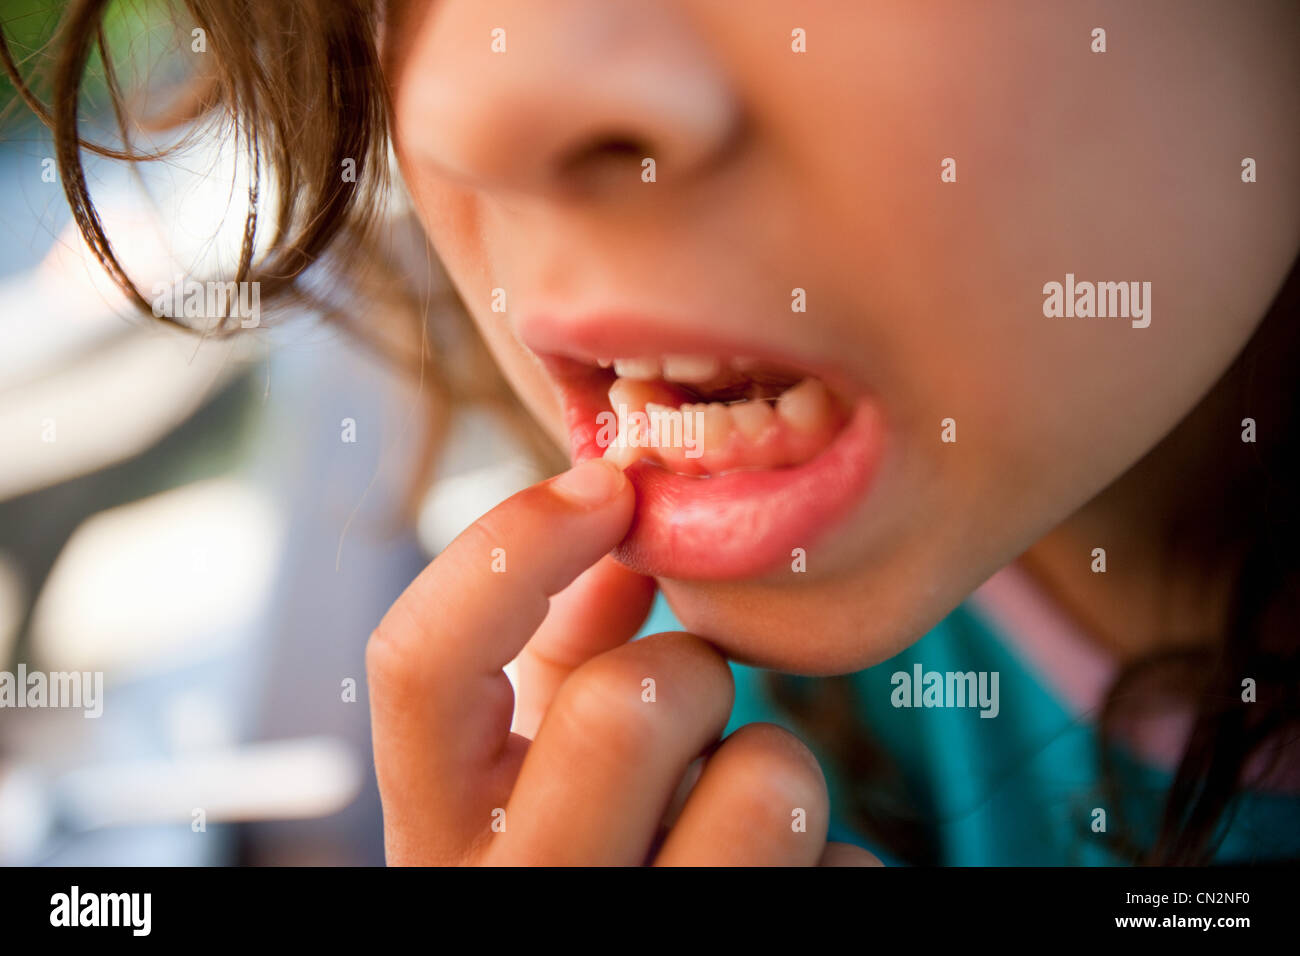 Girl touching loose tooth - Stock Image